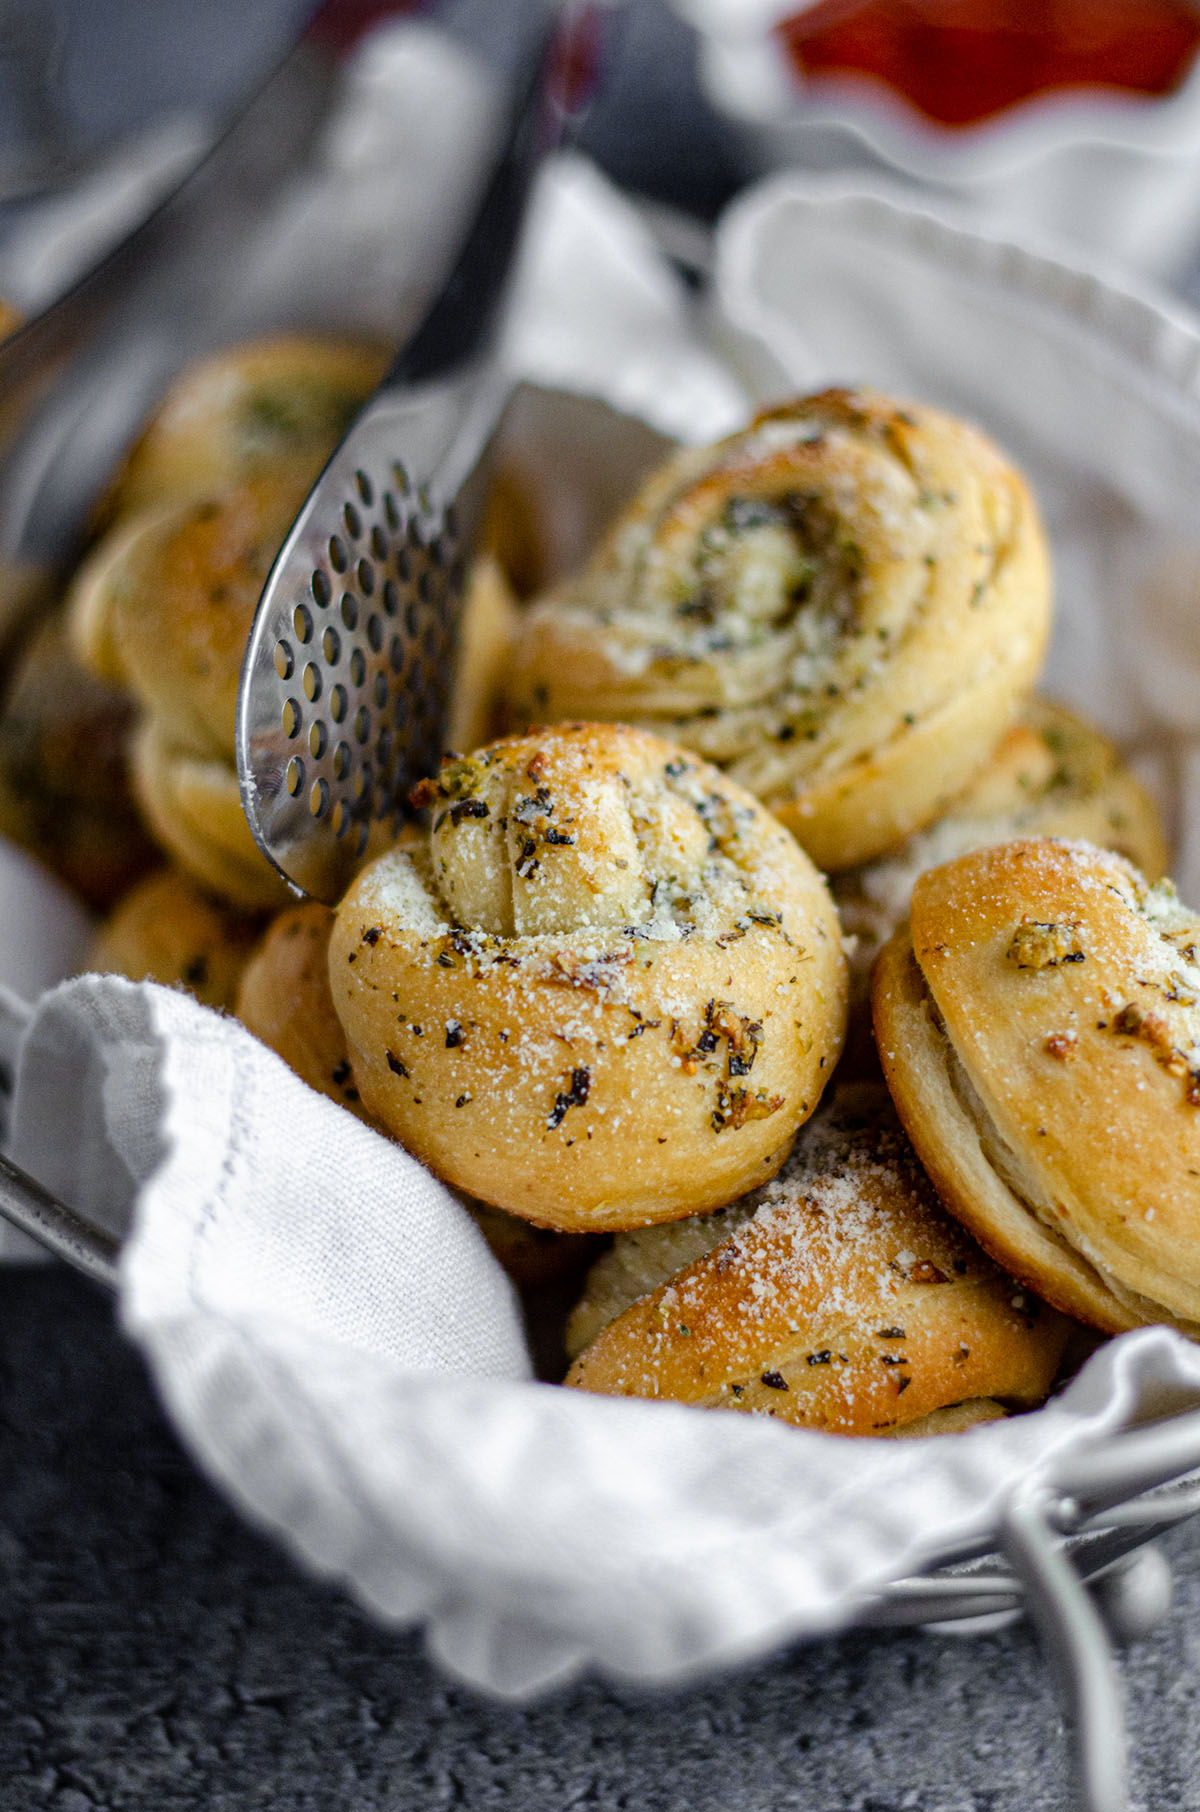 Homemade Garlic Knots: Easy garlic knots made from store bought pizza dough. Crunchy and flavorful on the outside, soft and fluffy on the inside, and ready in less than 30 minutes.